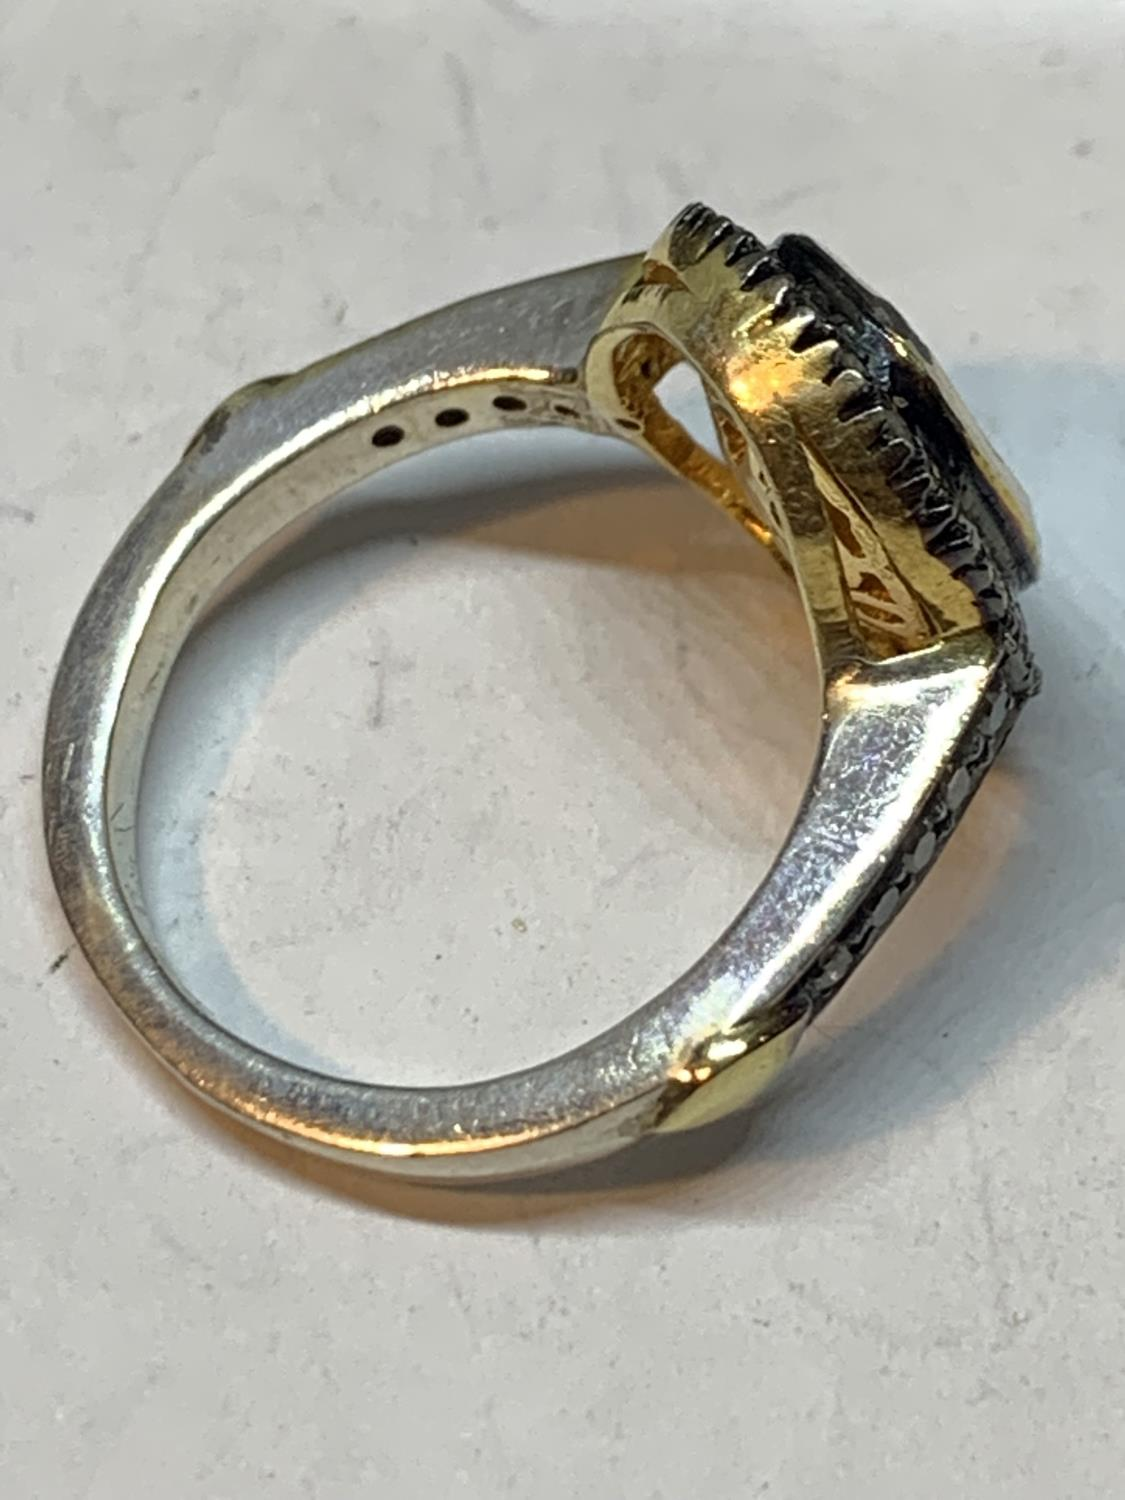 A CONTINENTAL WHITE AND YELLOW METAL RING WITH CENTRE DIAMOND AND SMALLER SURROUNDING DIAMONDS WHICH - Image 3 of 6